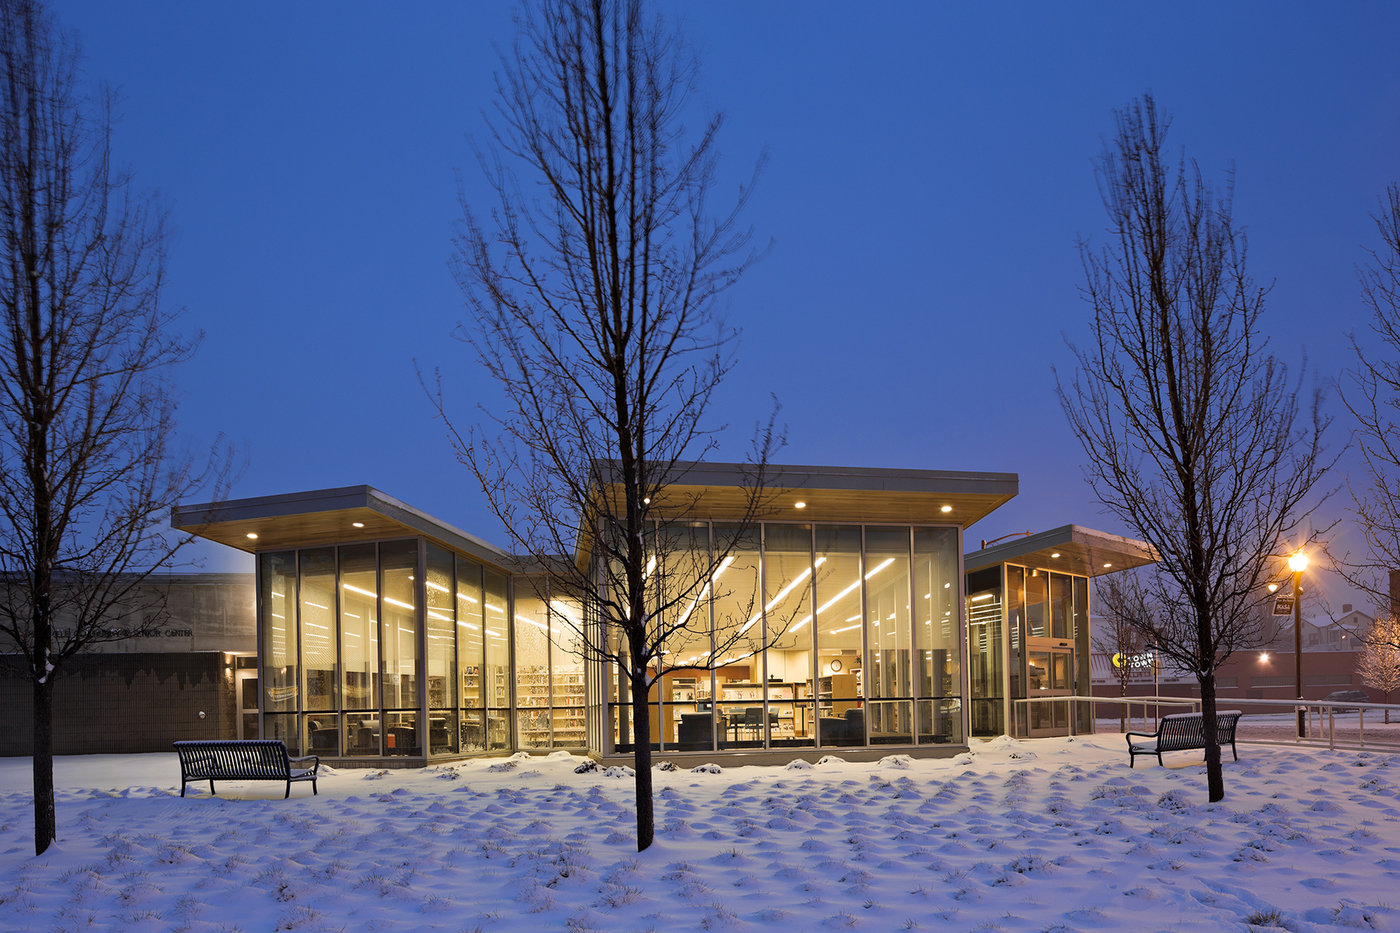 1 tskp hartford public library dwight parkville branch exterior detail winter night lighting entrance1 1400 xxx q85